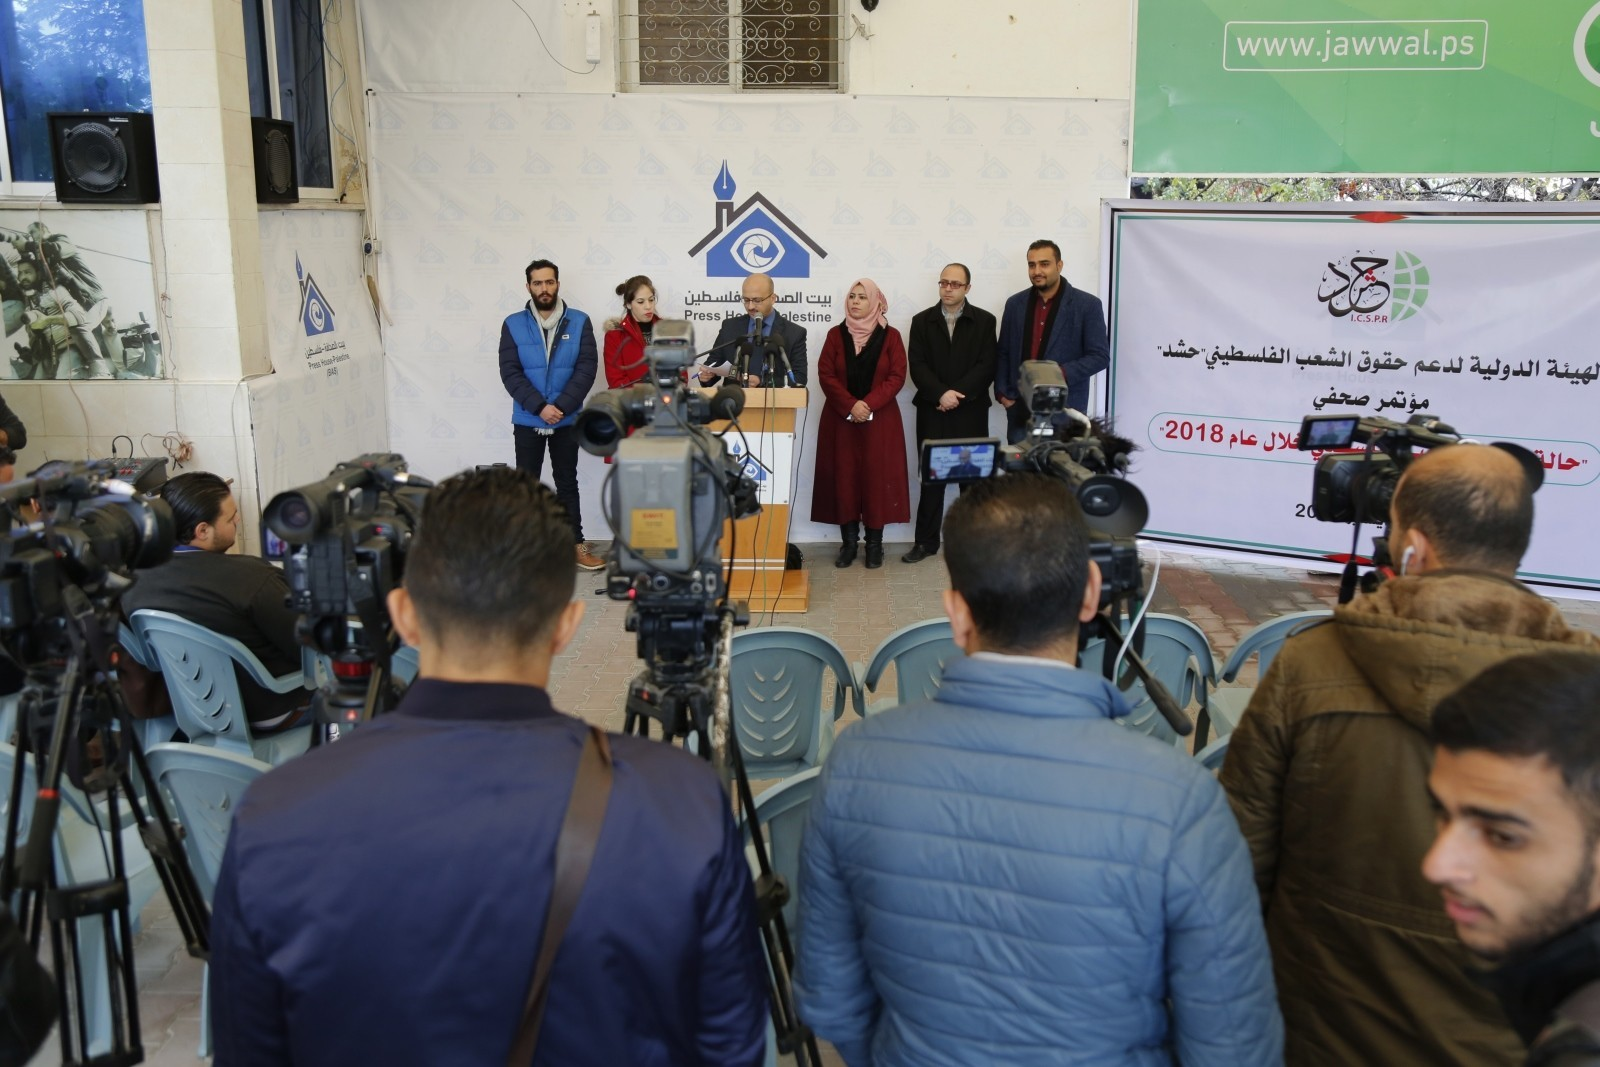 Press House hosts a press conference on the Situation of human rights in Palestine in 2018